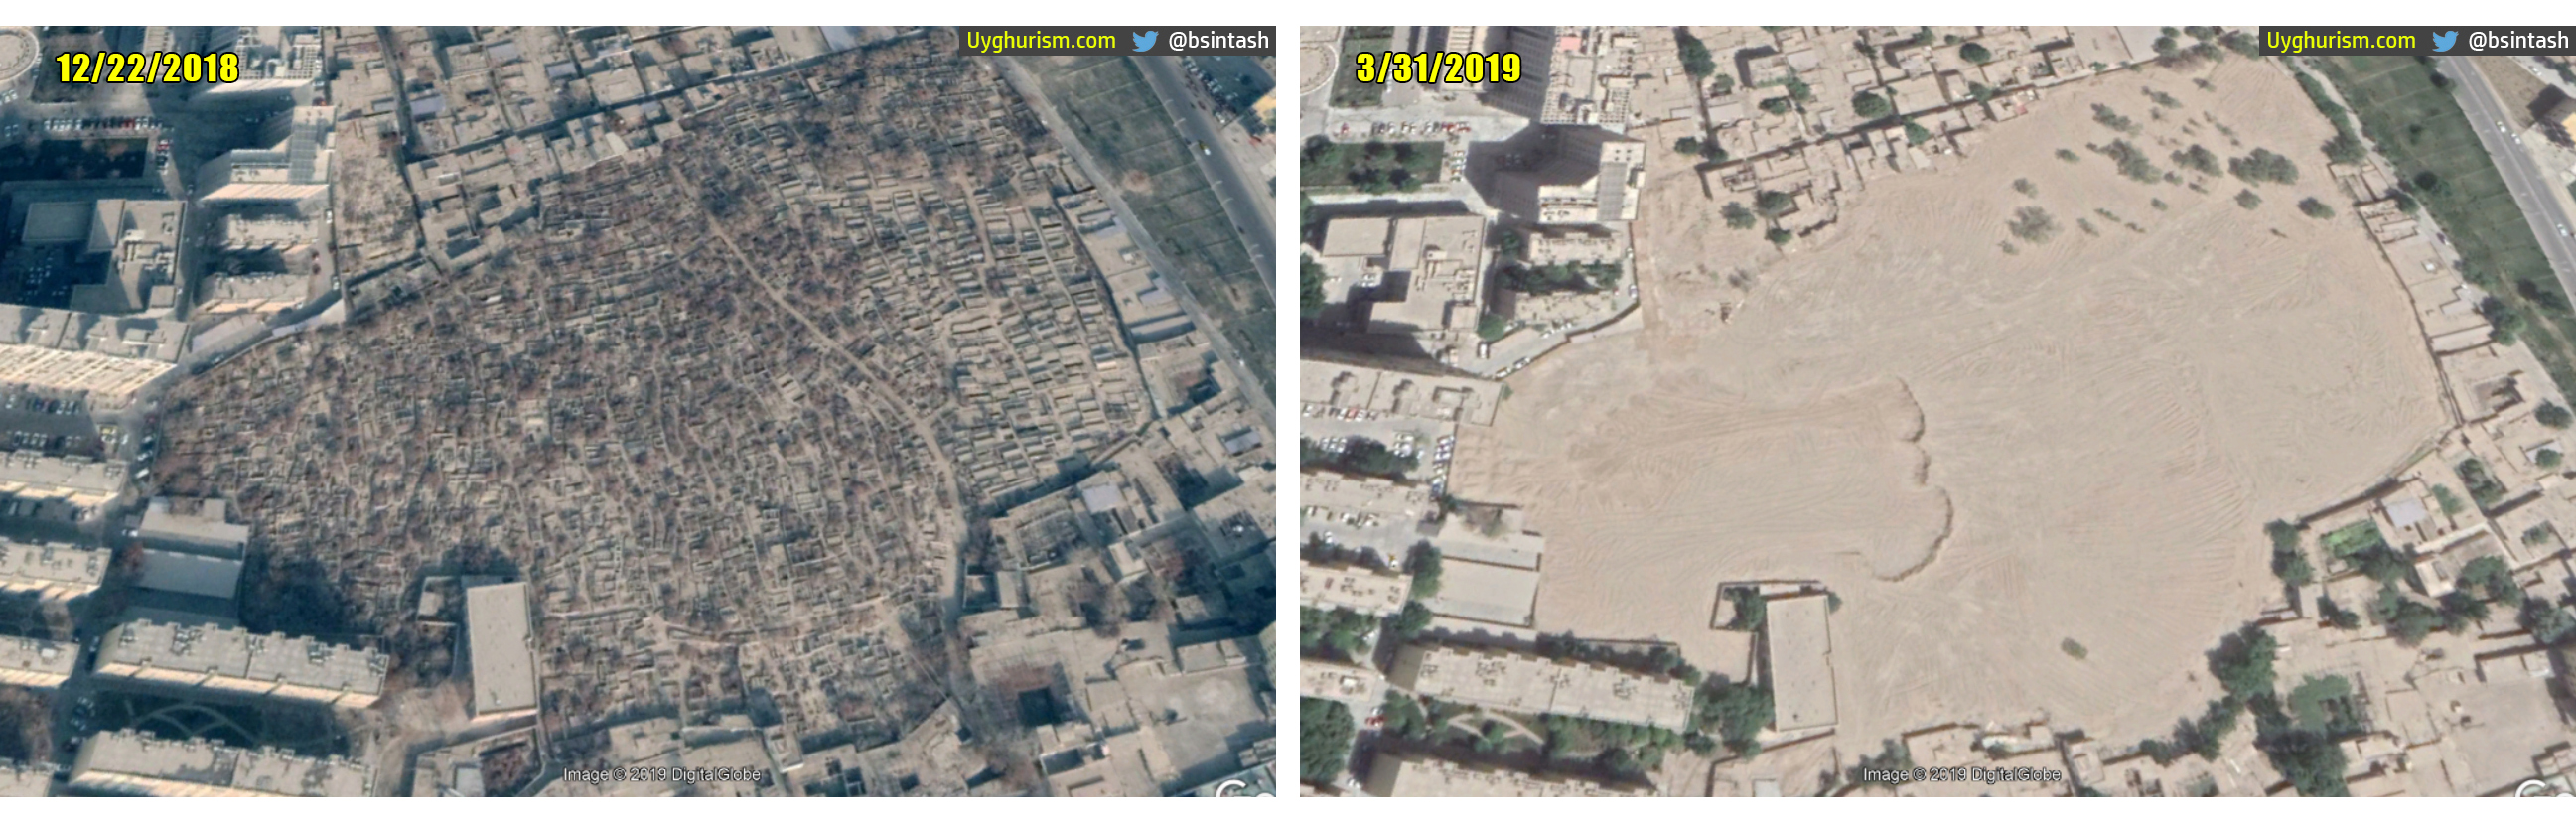 Satellite imagery comparison analysis of Sultanim Cemetery in Hotan City. Left: December 22, 2018. Right: March 31, 2019